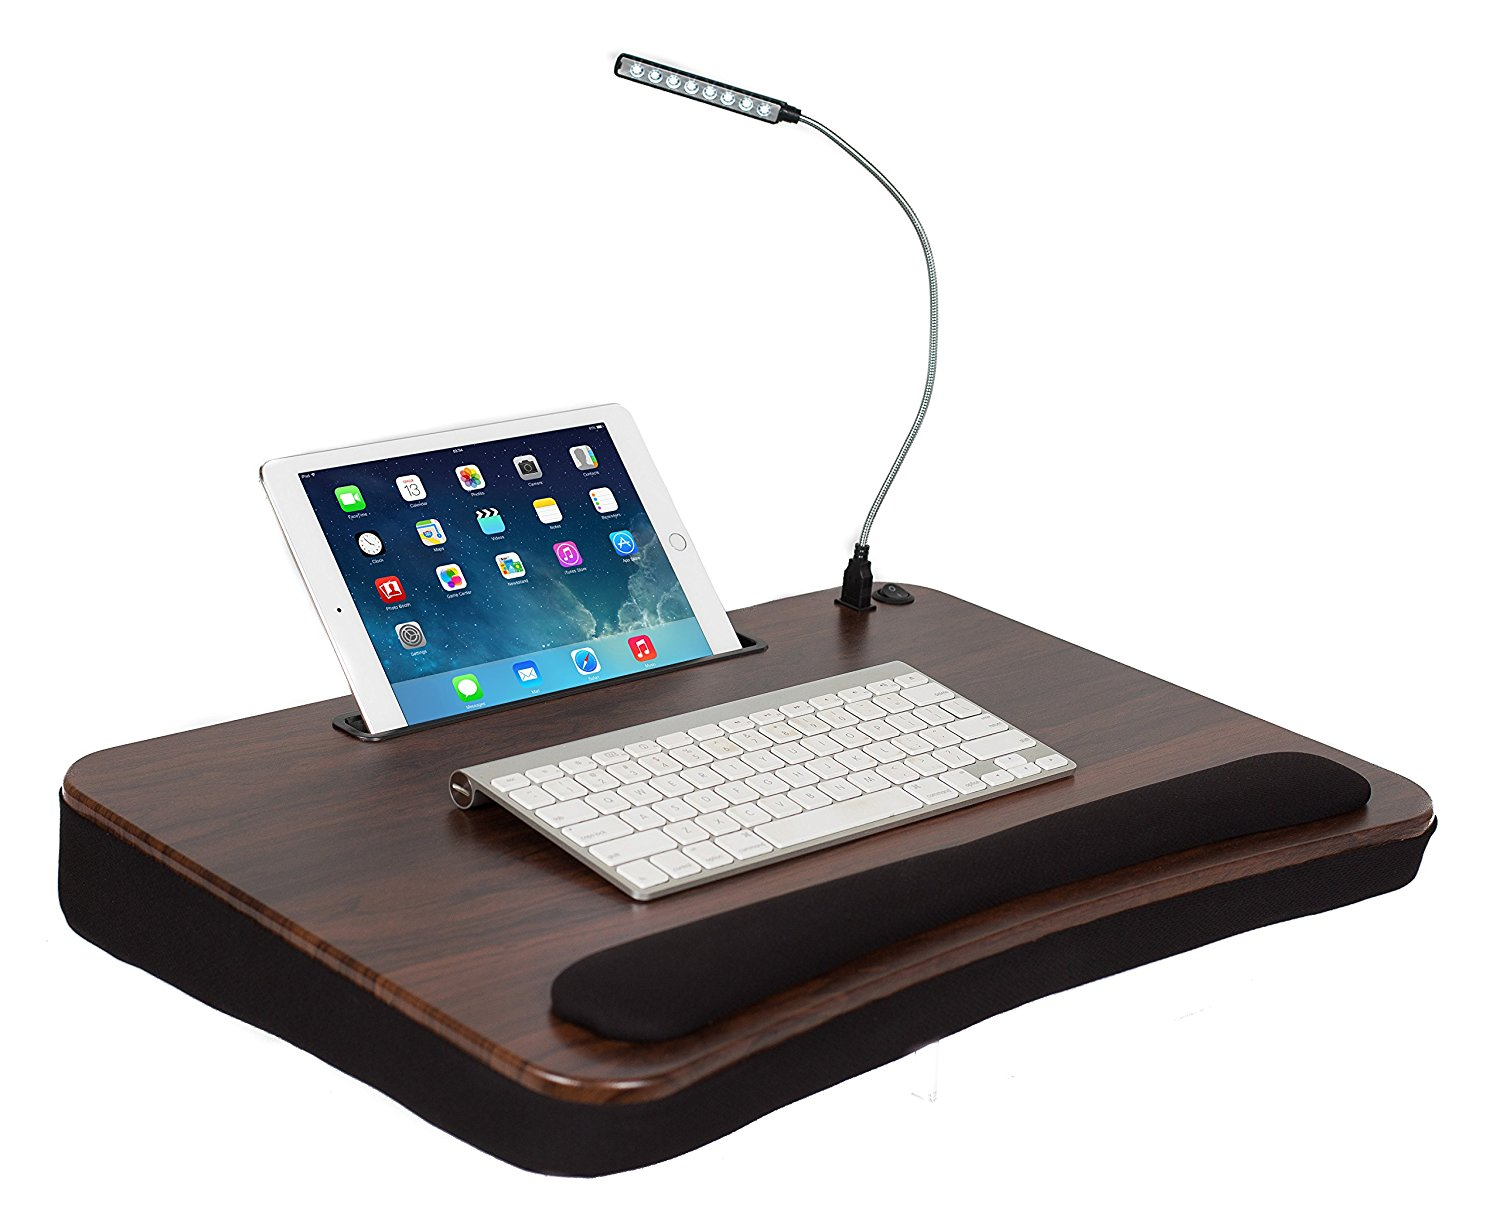 Sofia & Sam XLG Deluxe Lap Desk with Tablet Slot (With USB Light, Wood Top )